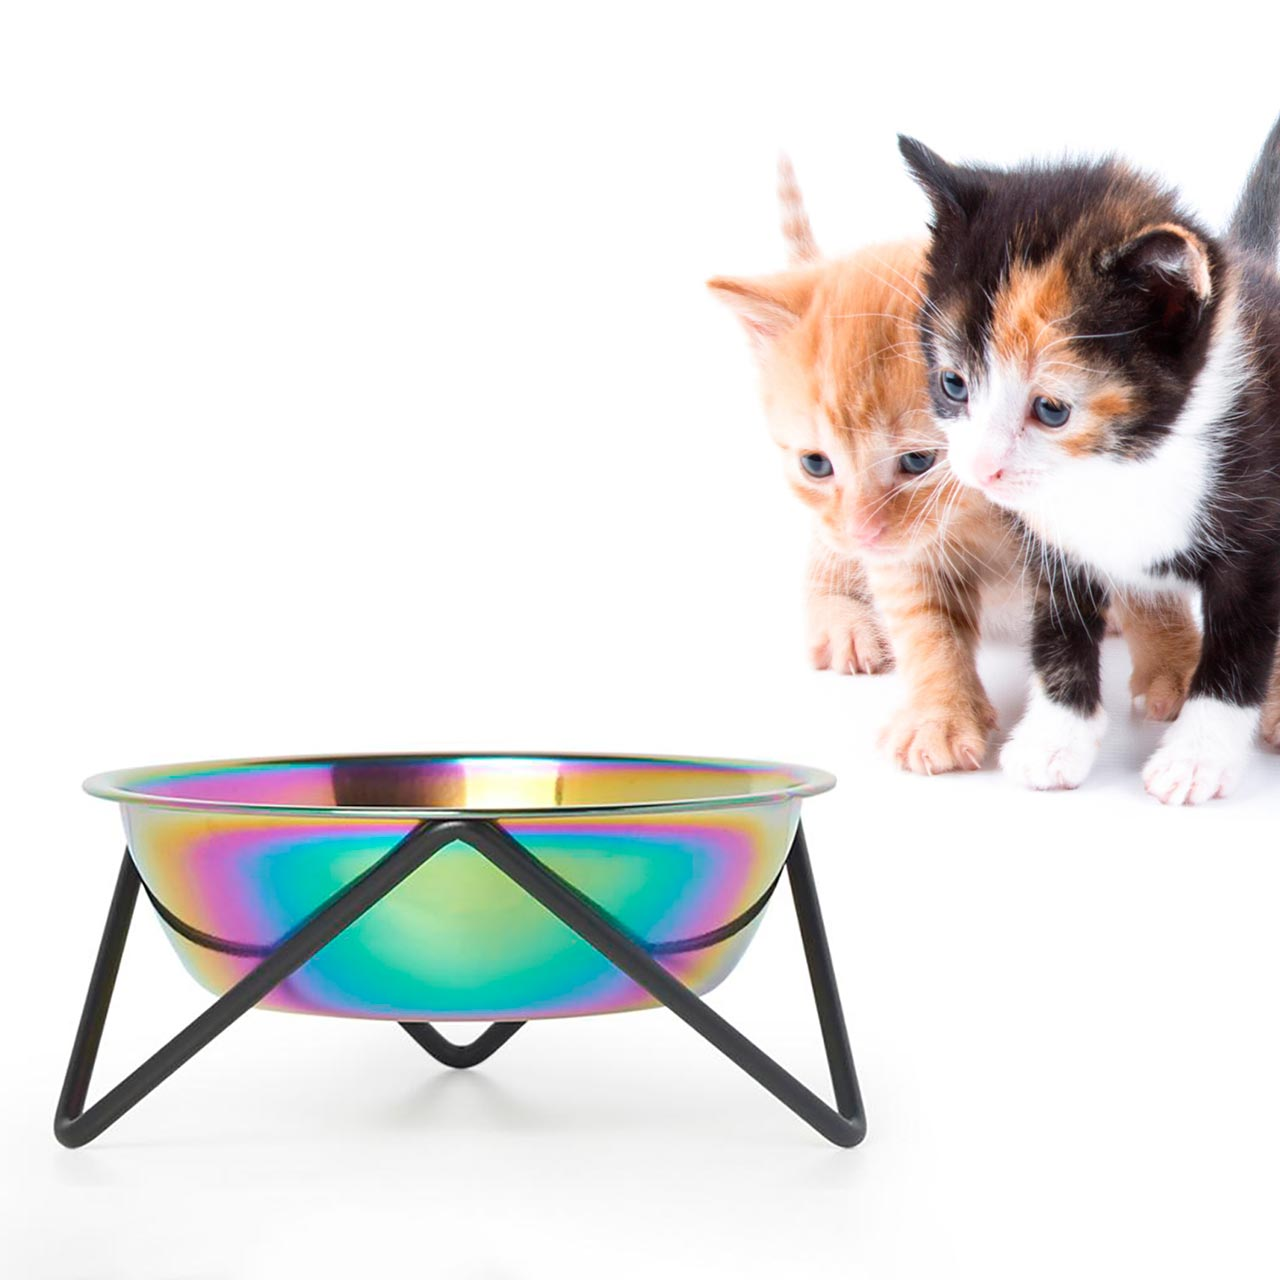 BENDO meow luxe cat dish with iridescent bowl and black stand | the design gift shop